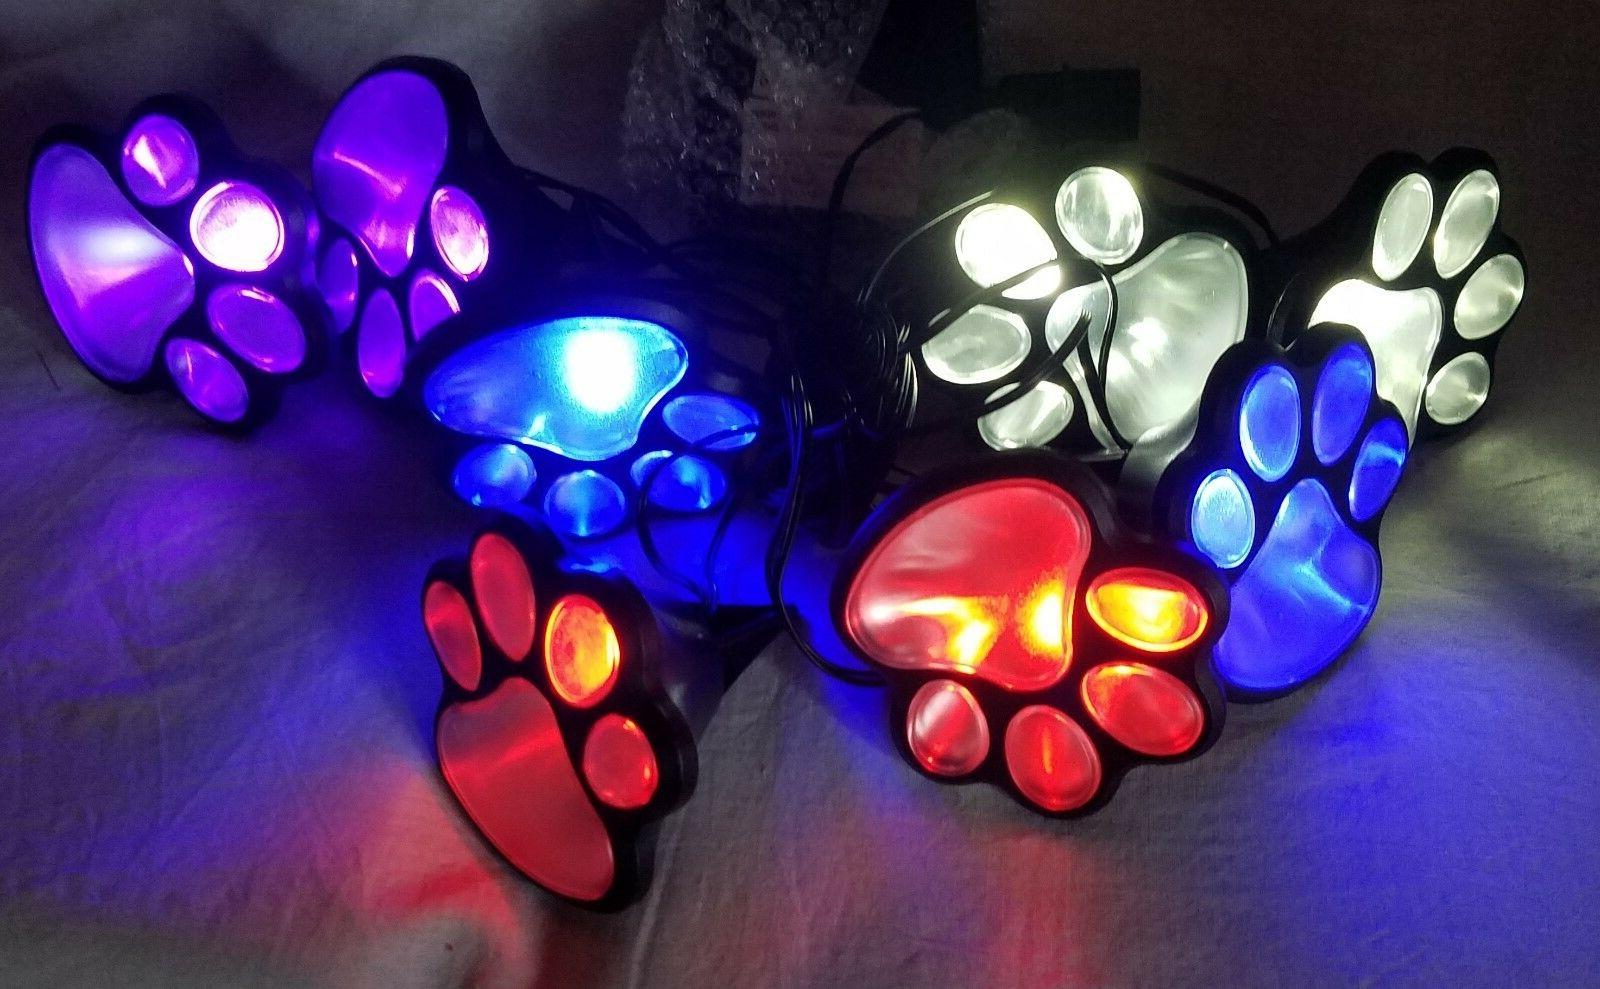 Set of Powered Paw Garden Walkway Path Lights Color